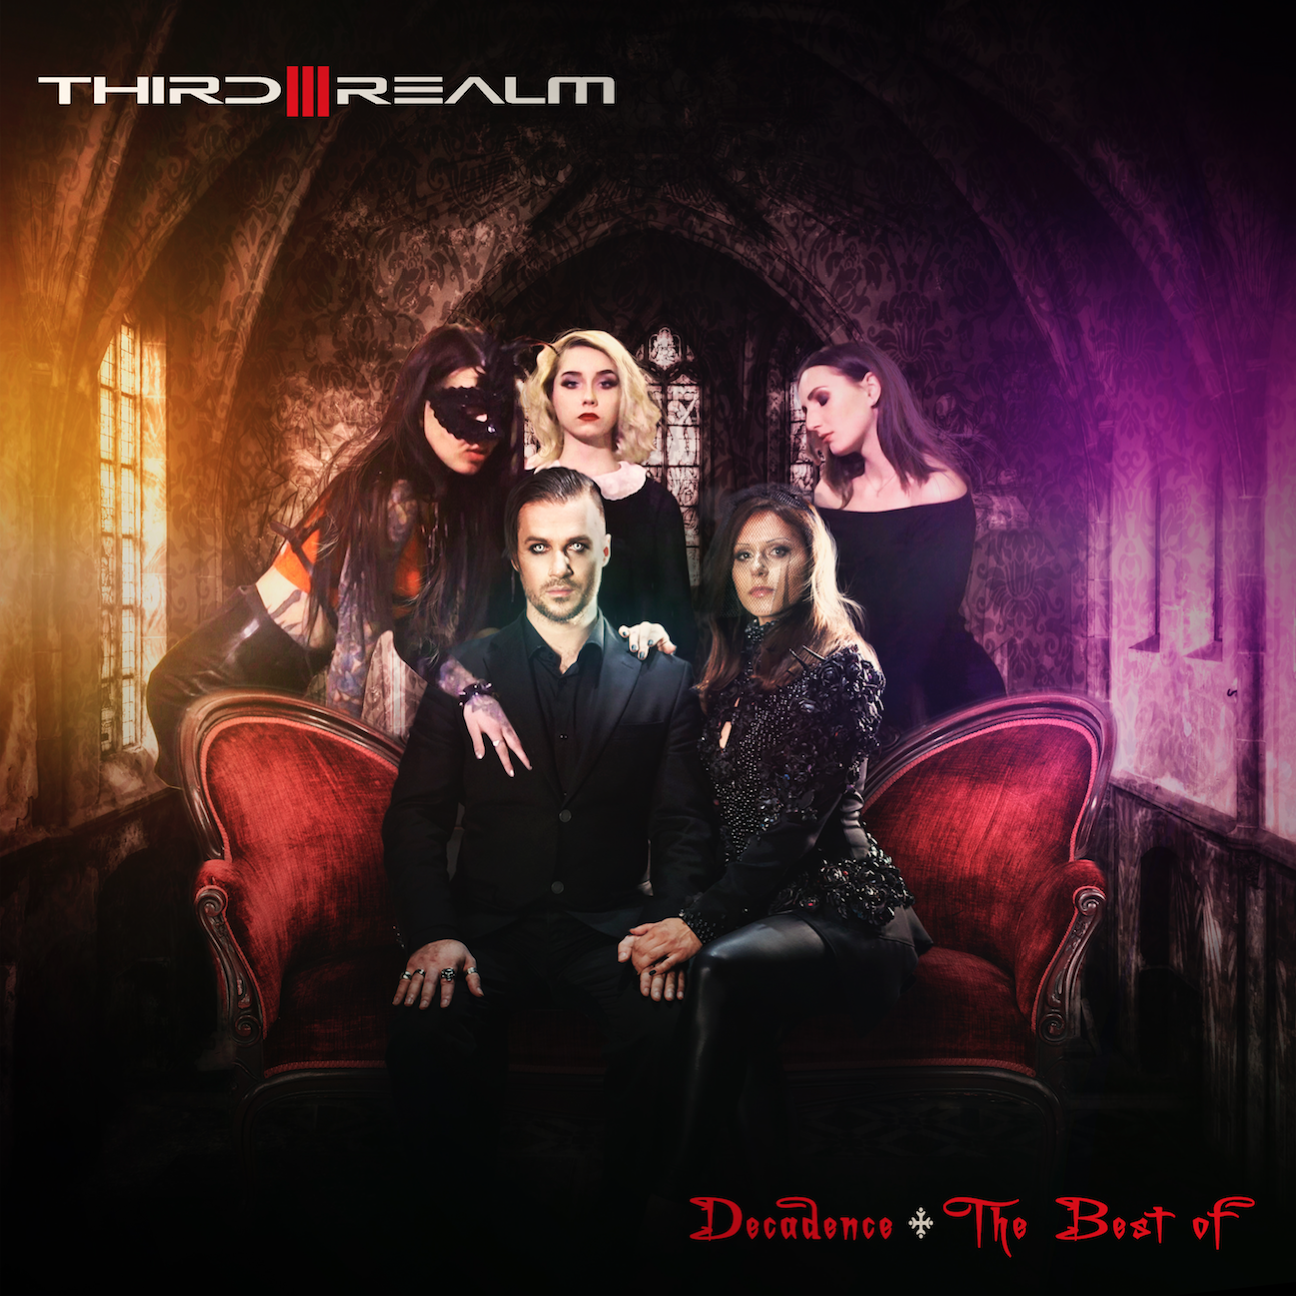 THIRD REALM - Decadence - The Best Of